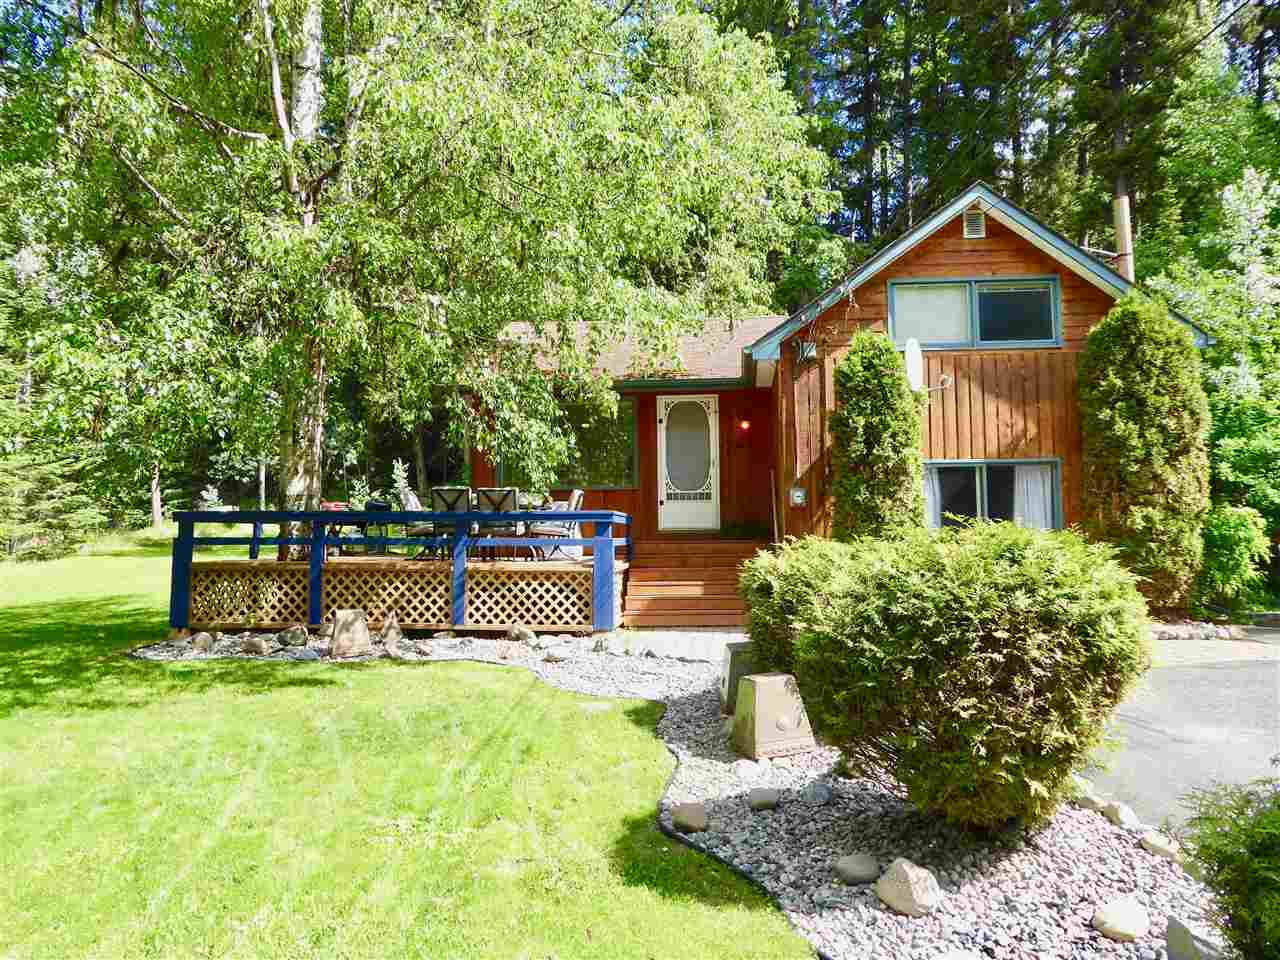 Main Photo: 7770 TOOMBS Drive in Prince George: Nechako Bench House for sale (PG City North (Zone 73))  : MLS®# R2275253